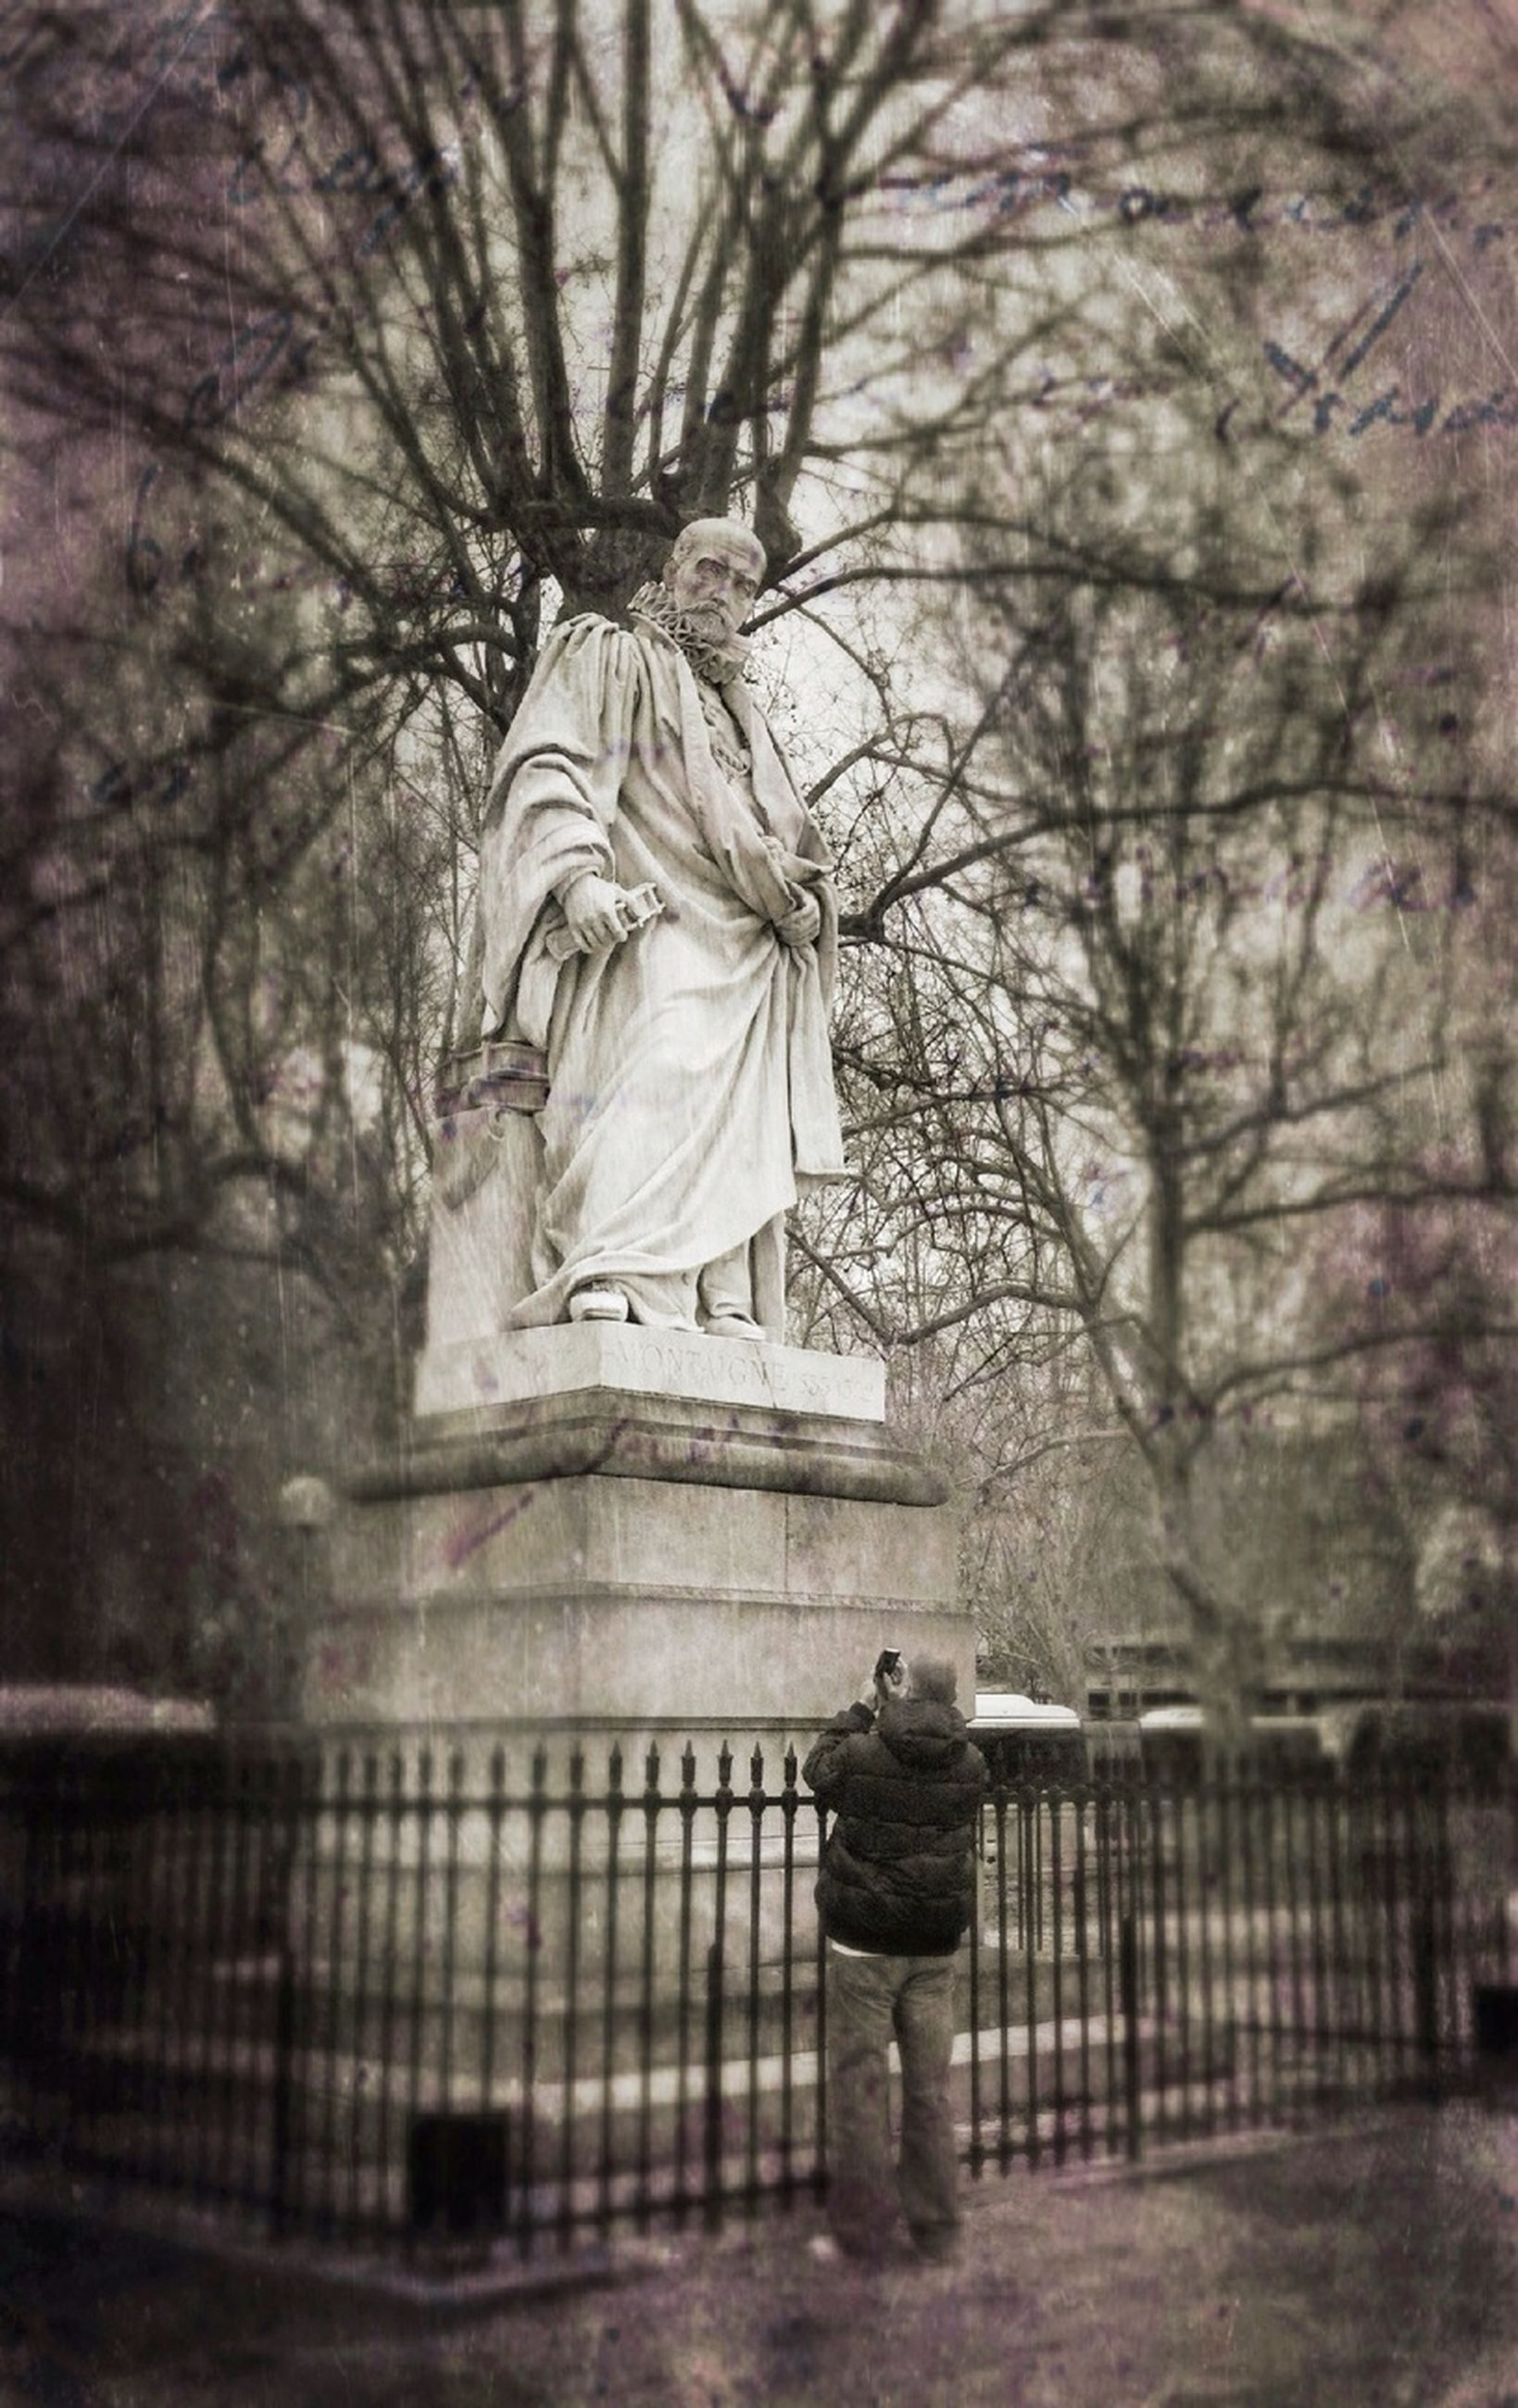 rear view, water, tree, statue, lifestyles, leisure activity, religion, full length, standing, human representation, person, lake, built structure, men, architecture, sculpture, spirituality, bare tree